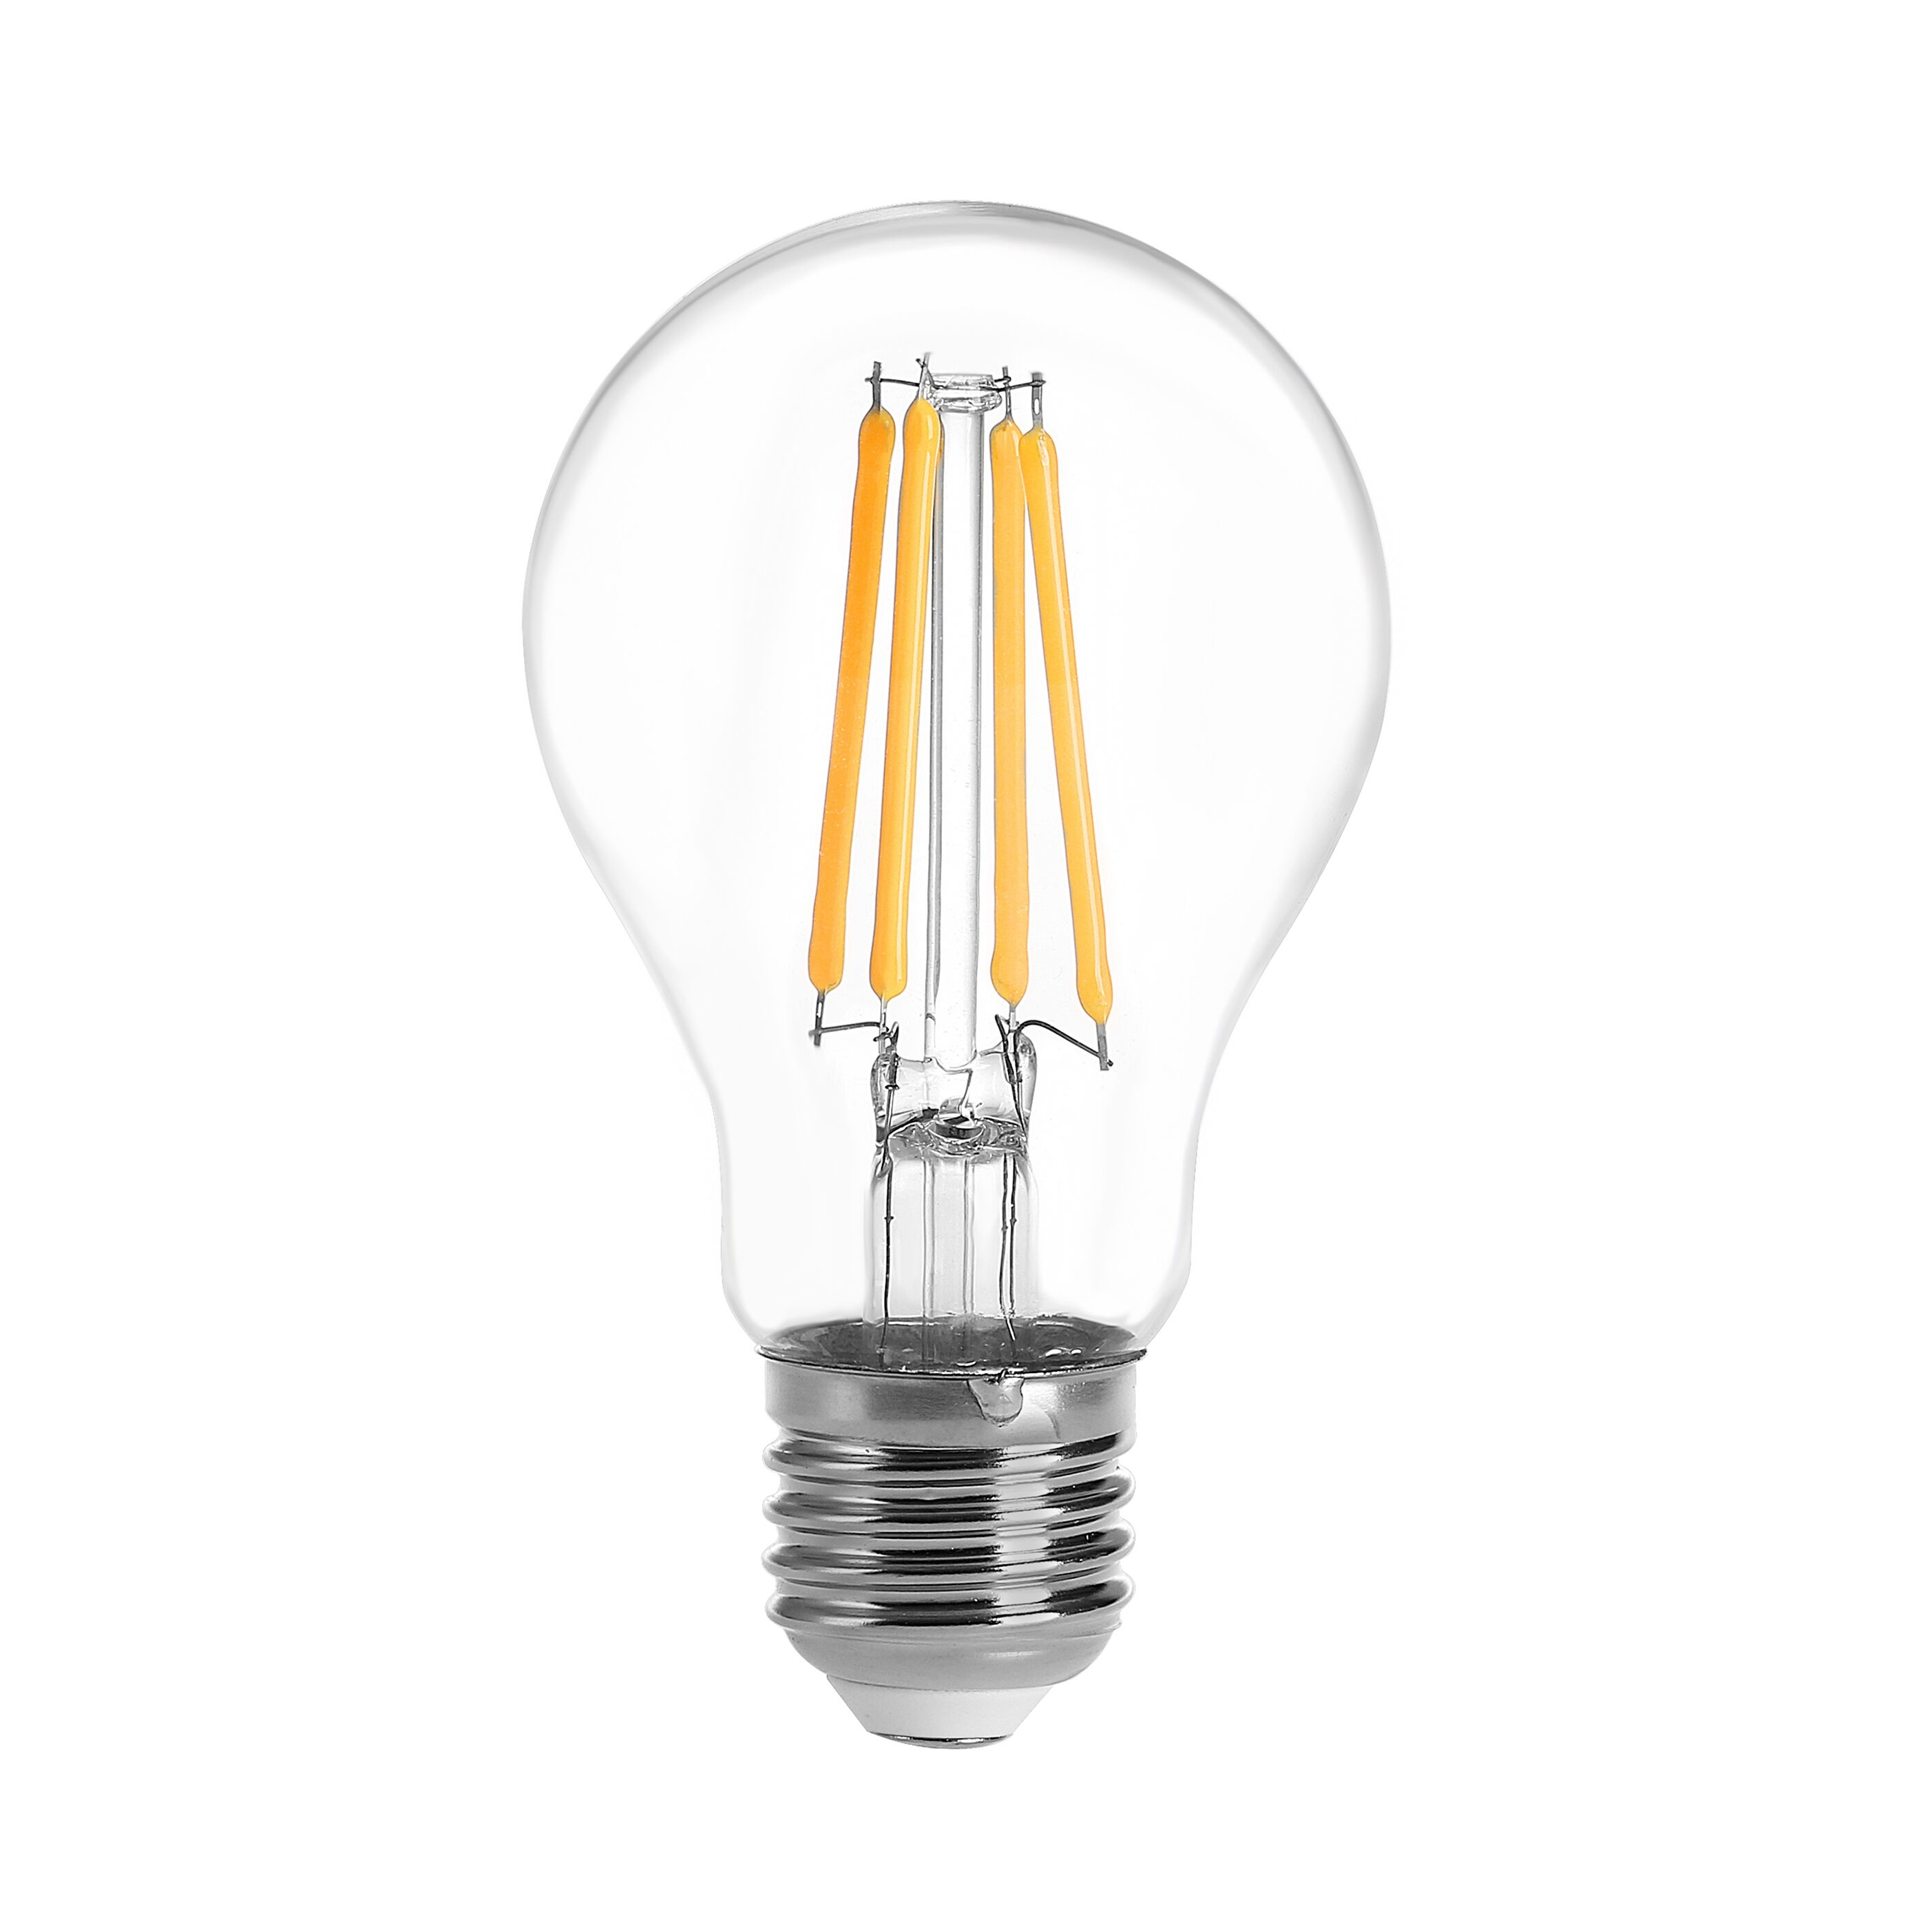 Led Filament Light Bulb Gls A19 A60 Made In China